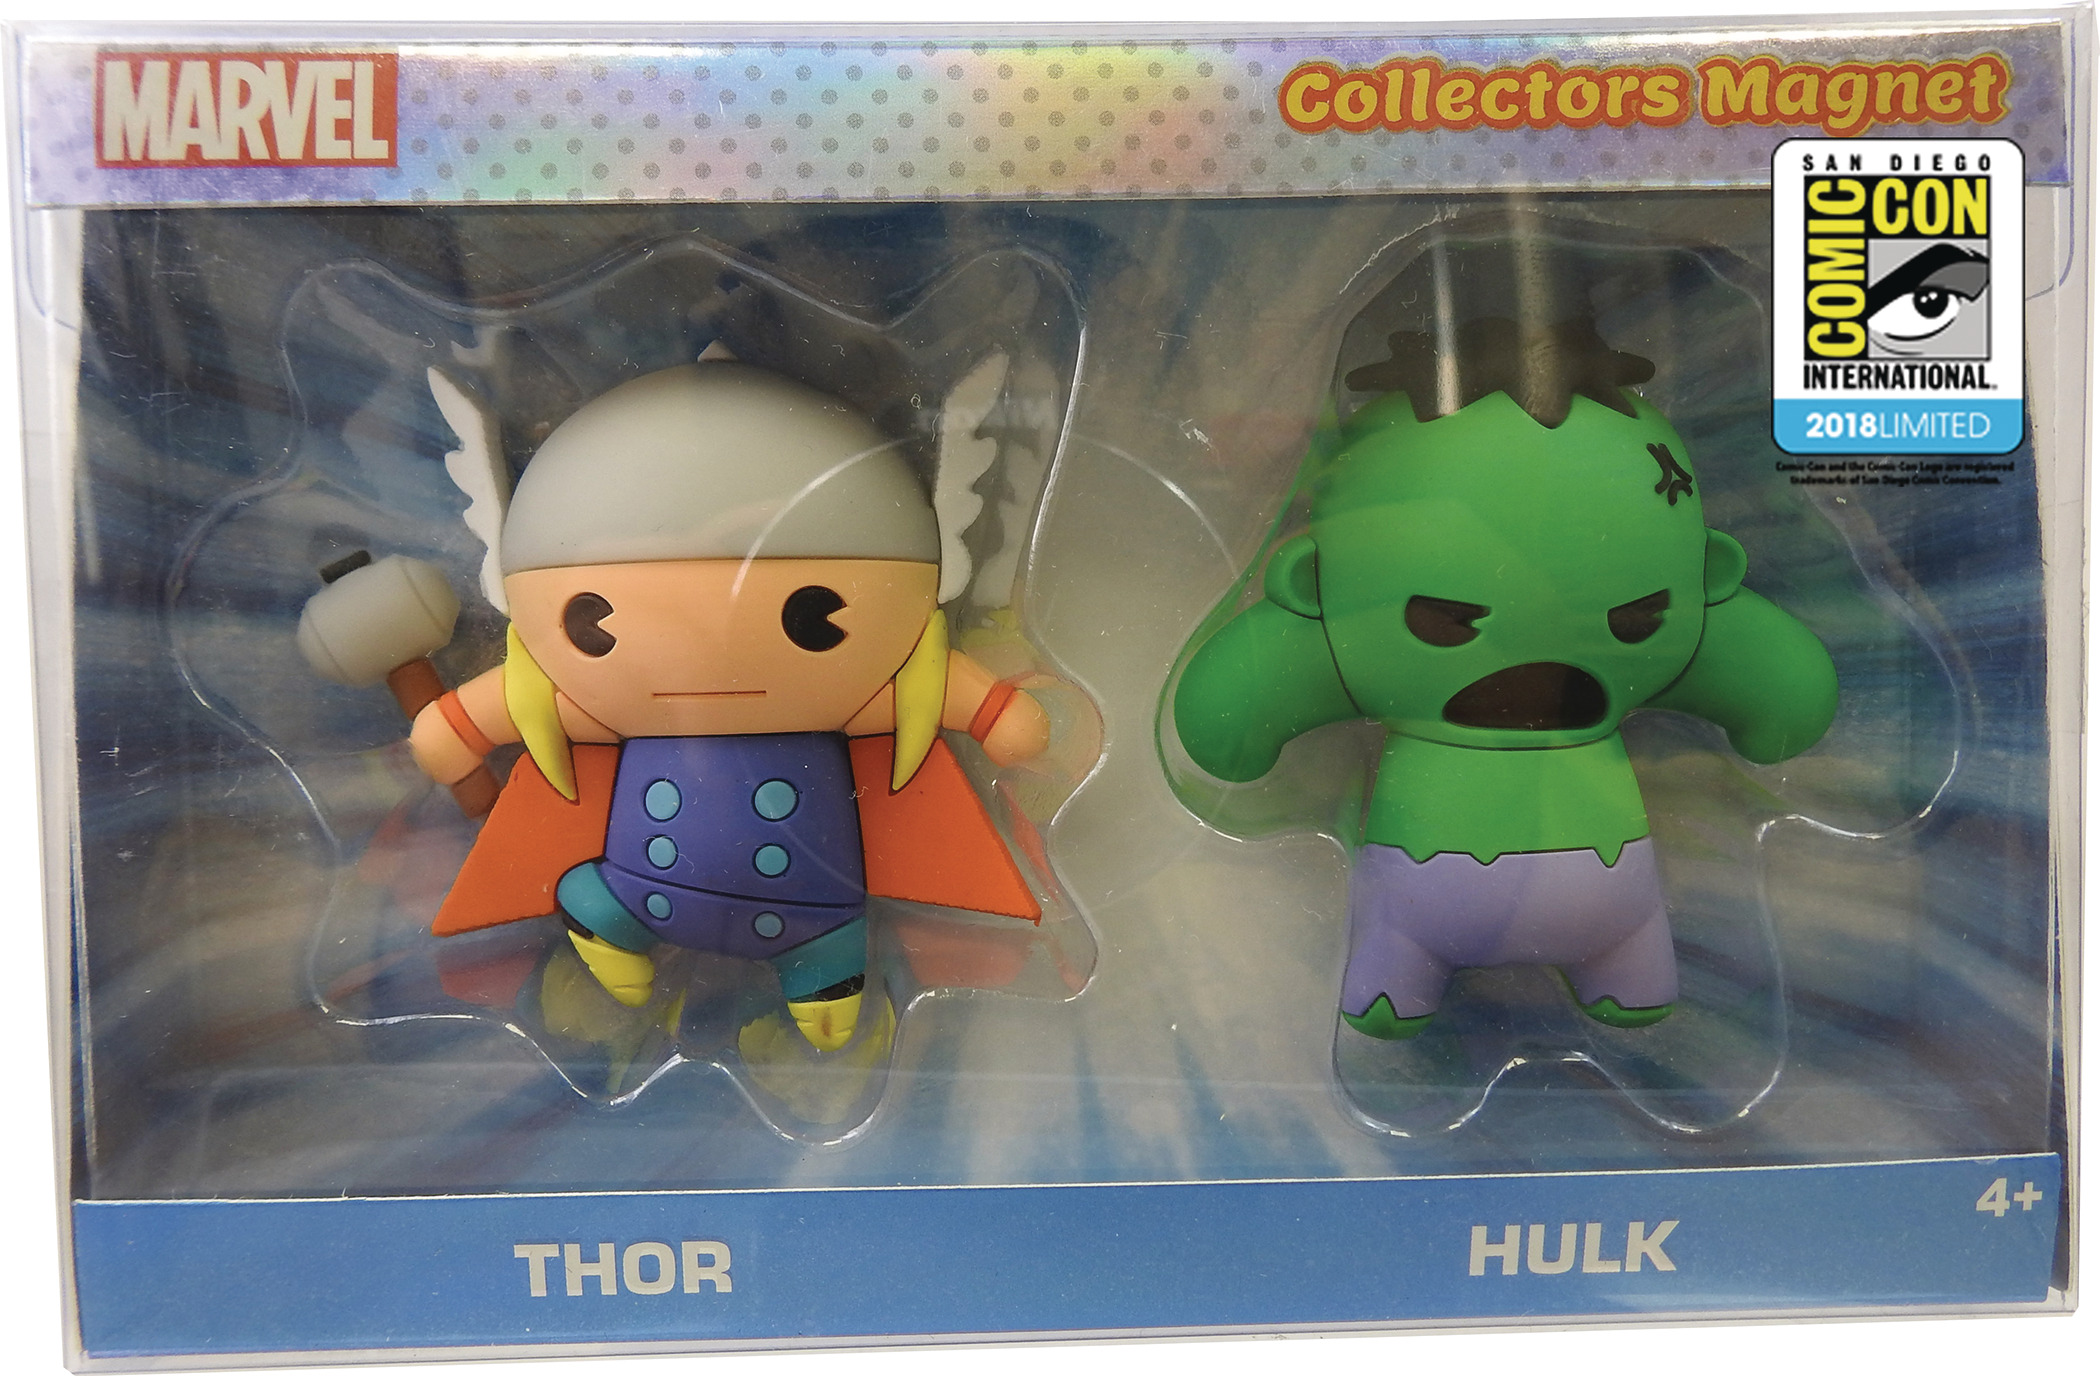 MARVEL THOR & HULK COLLECTOR CON EXCL MAGNET SET